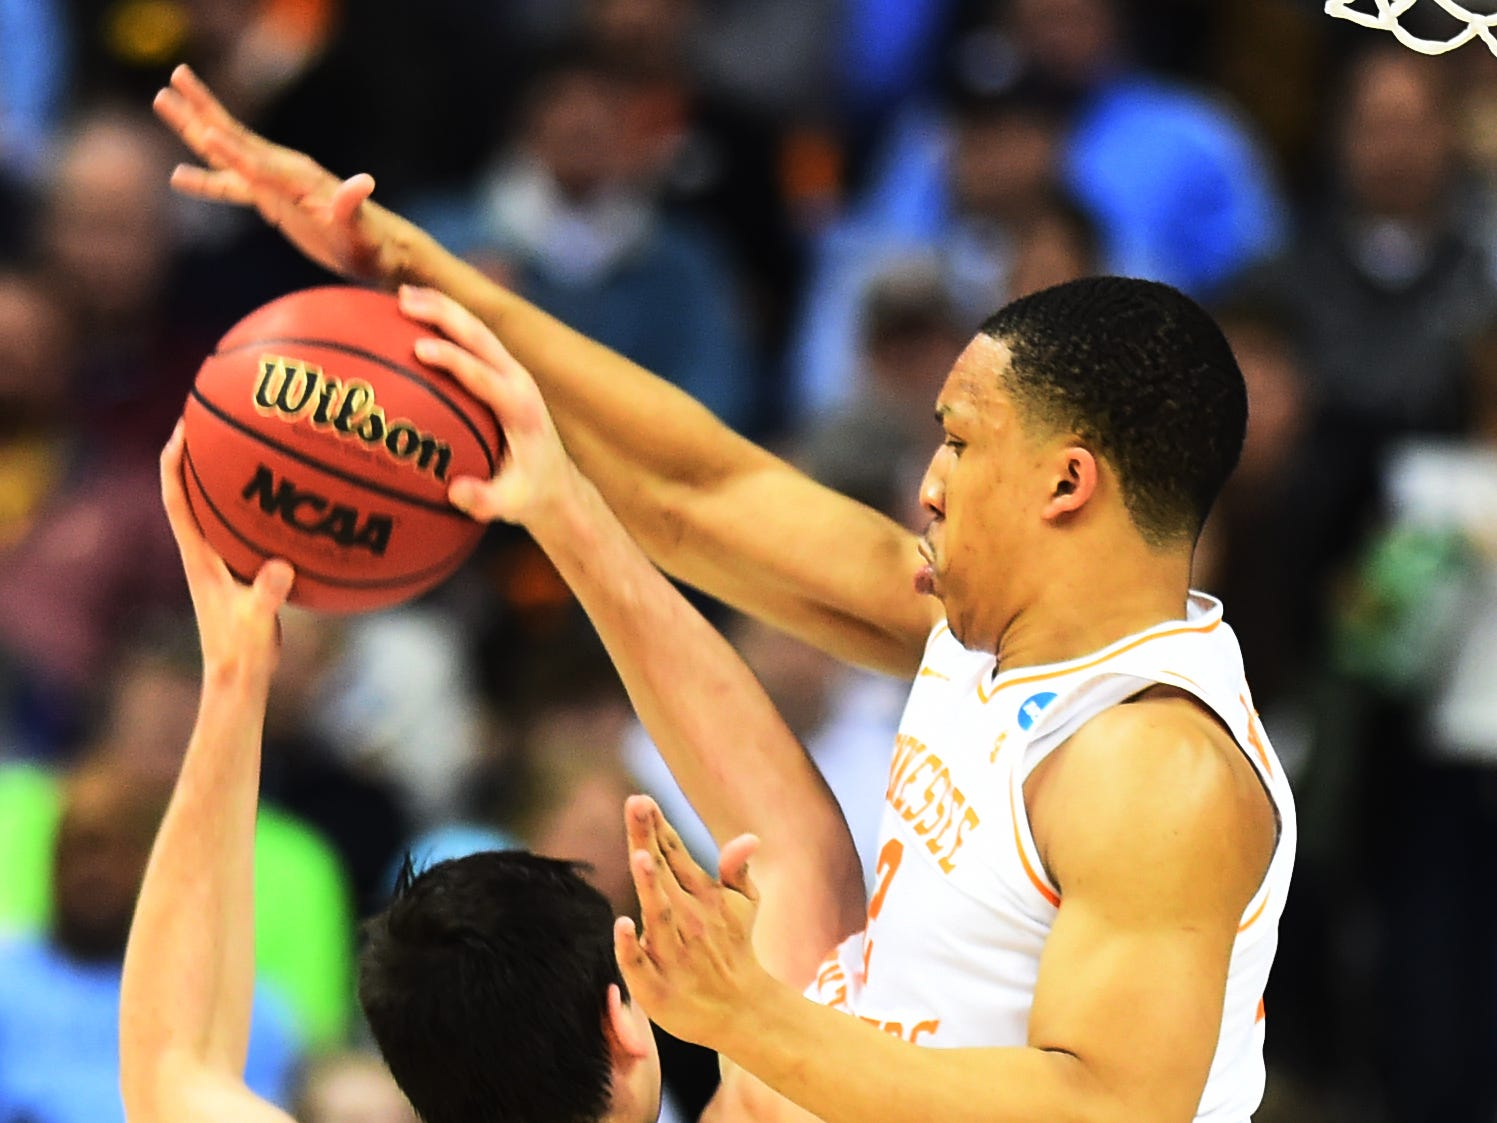 Tennessee forward Grant Williams (2) defends a shot by Iowa forward Ryan Kriener (15) during the first half of the game in the second round of the NCAA Tournament at Nationwide Arena in Columbus, Ohio, Sunday, March 24, 2019.